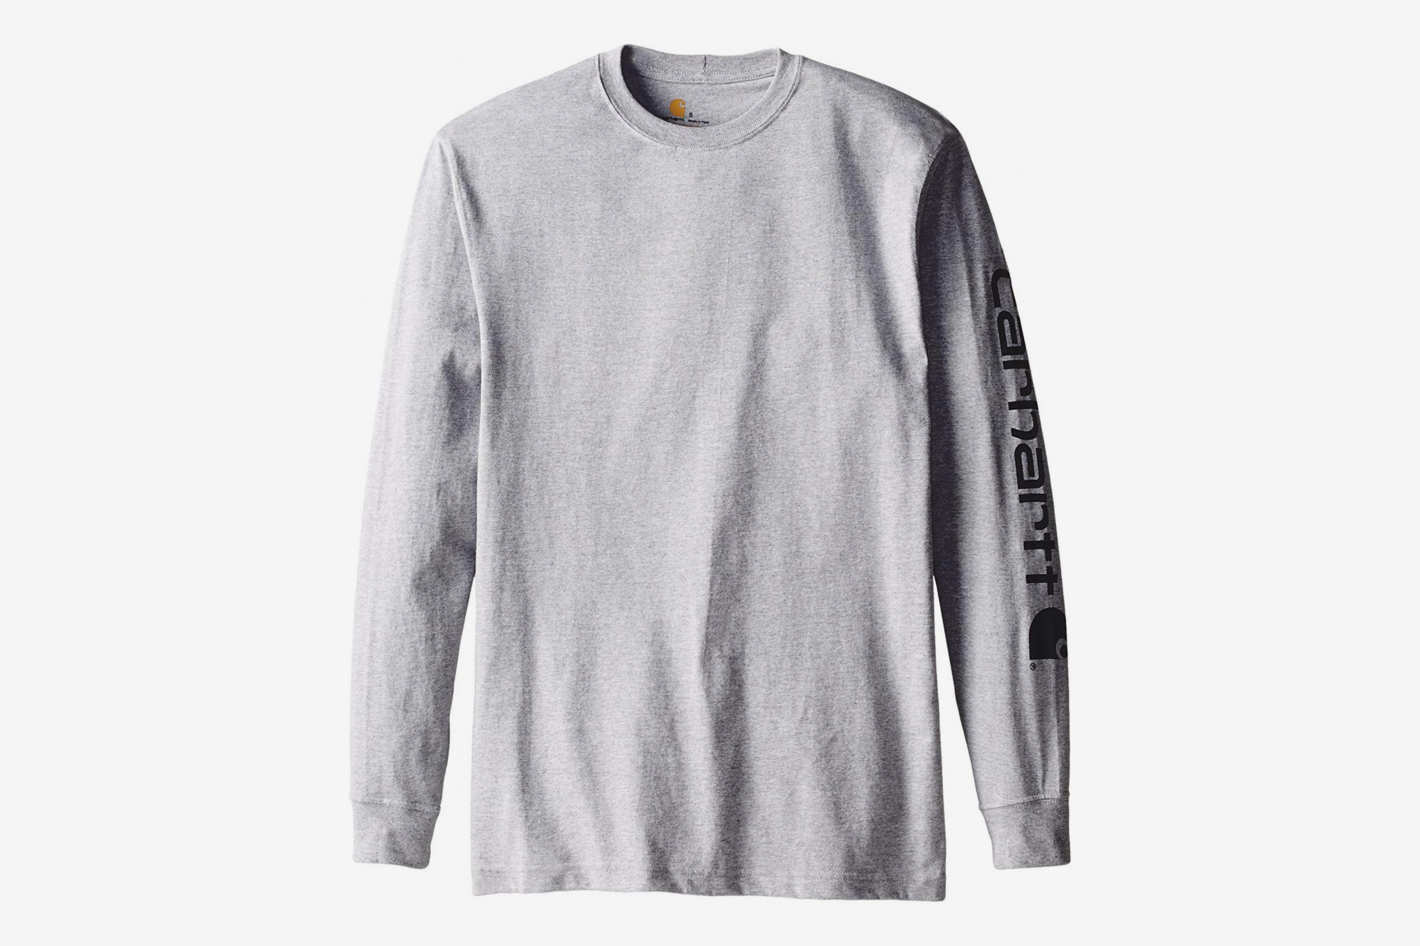 18b573c2bf Best Men's Long Sleeve Tees on Amazon, According to Reviews